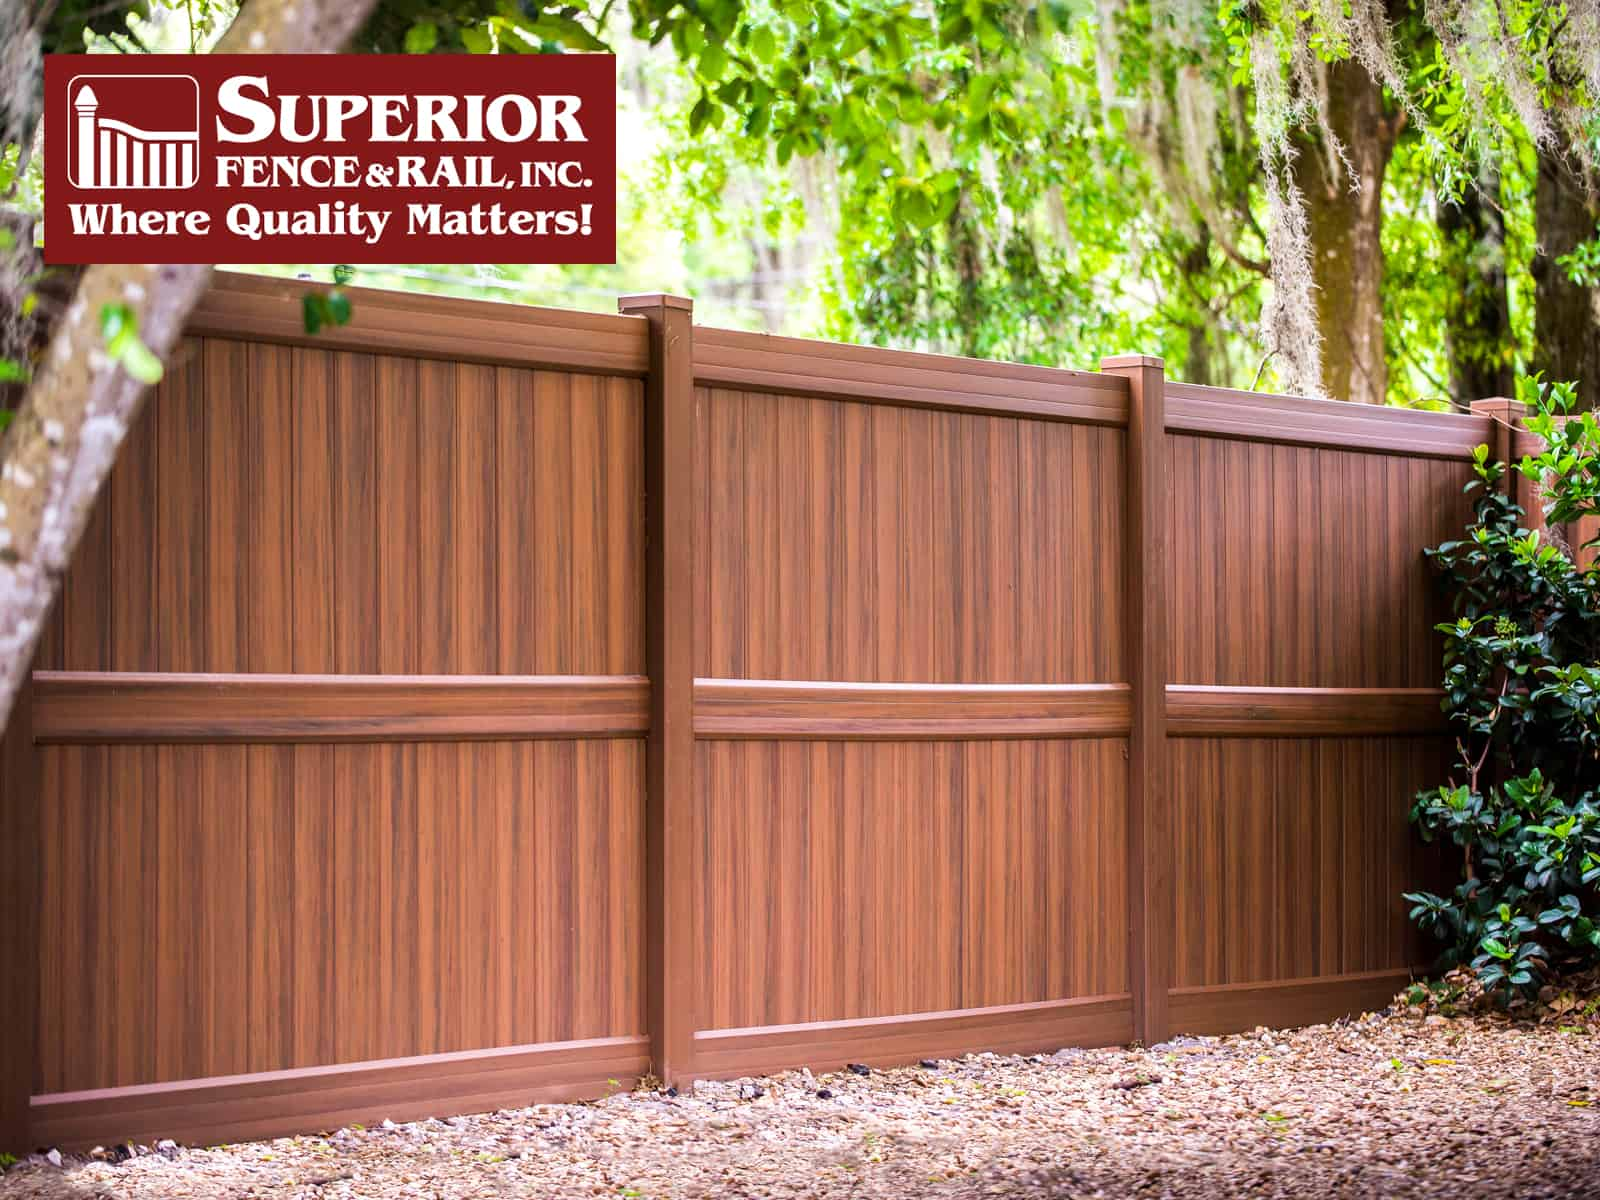 https://www.superiorfenceandrail.com/wp-content/uploads/2020/04/Meridian-Fence-Company-Contractor.jpg